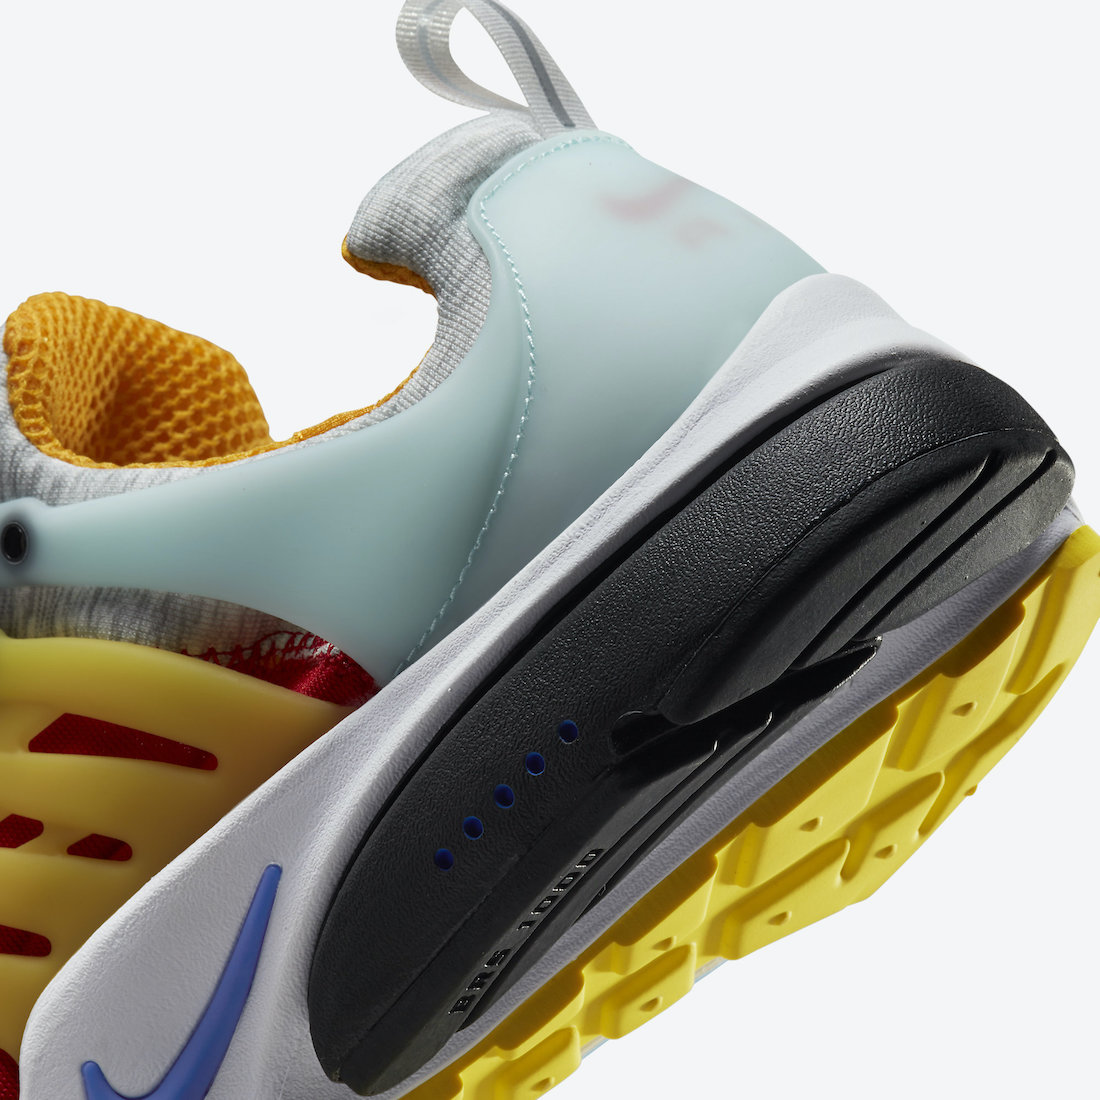 Nike Air Presto What The DM9554-900 Release Date